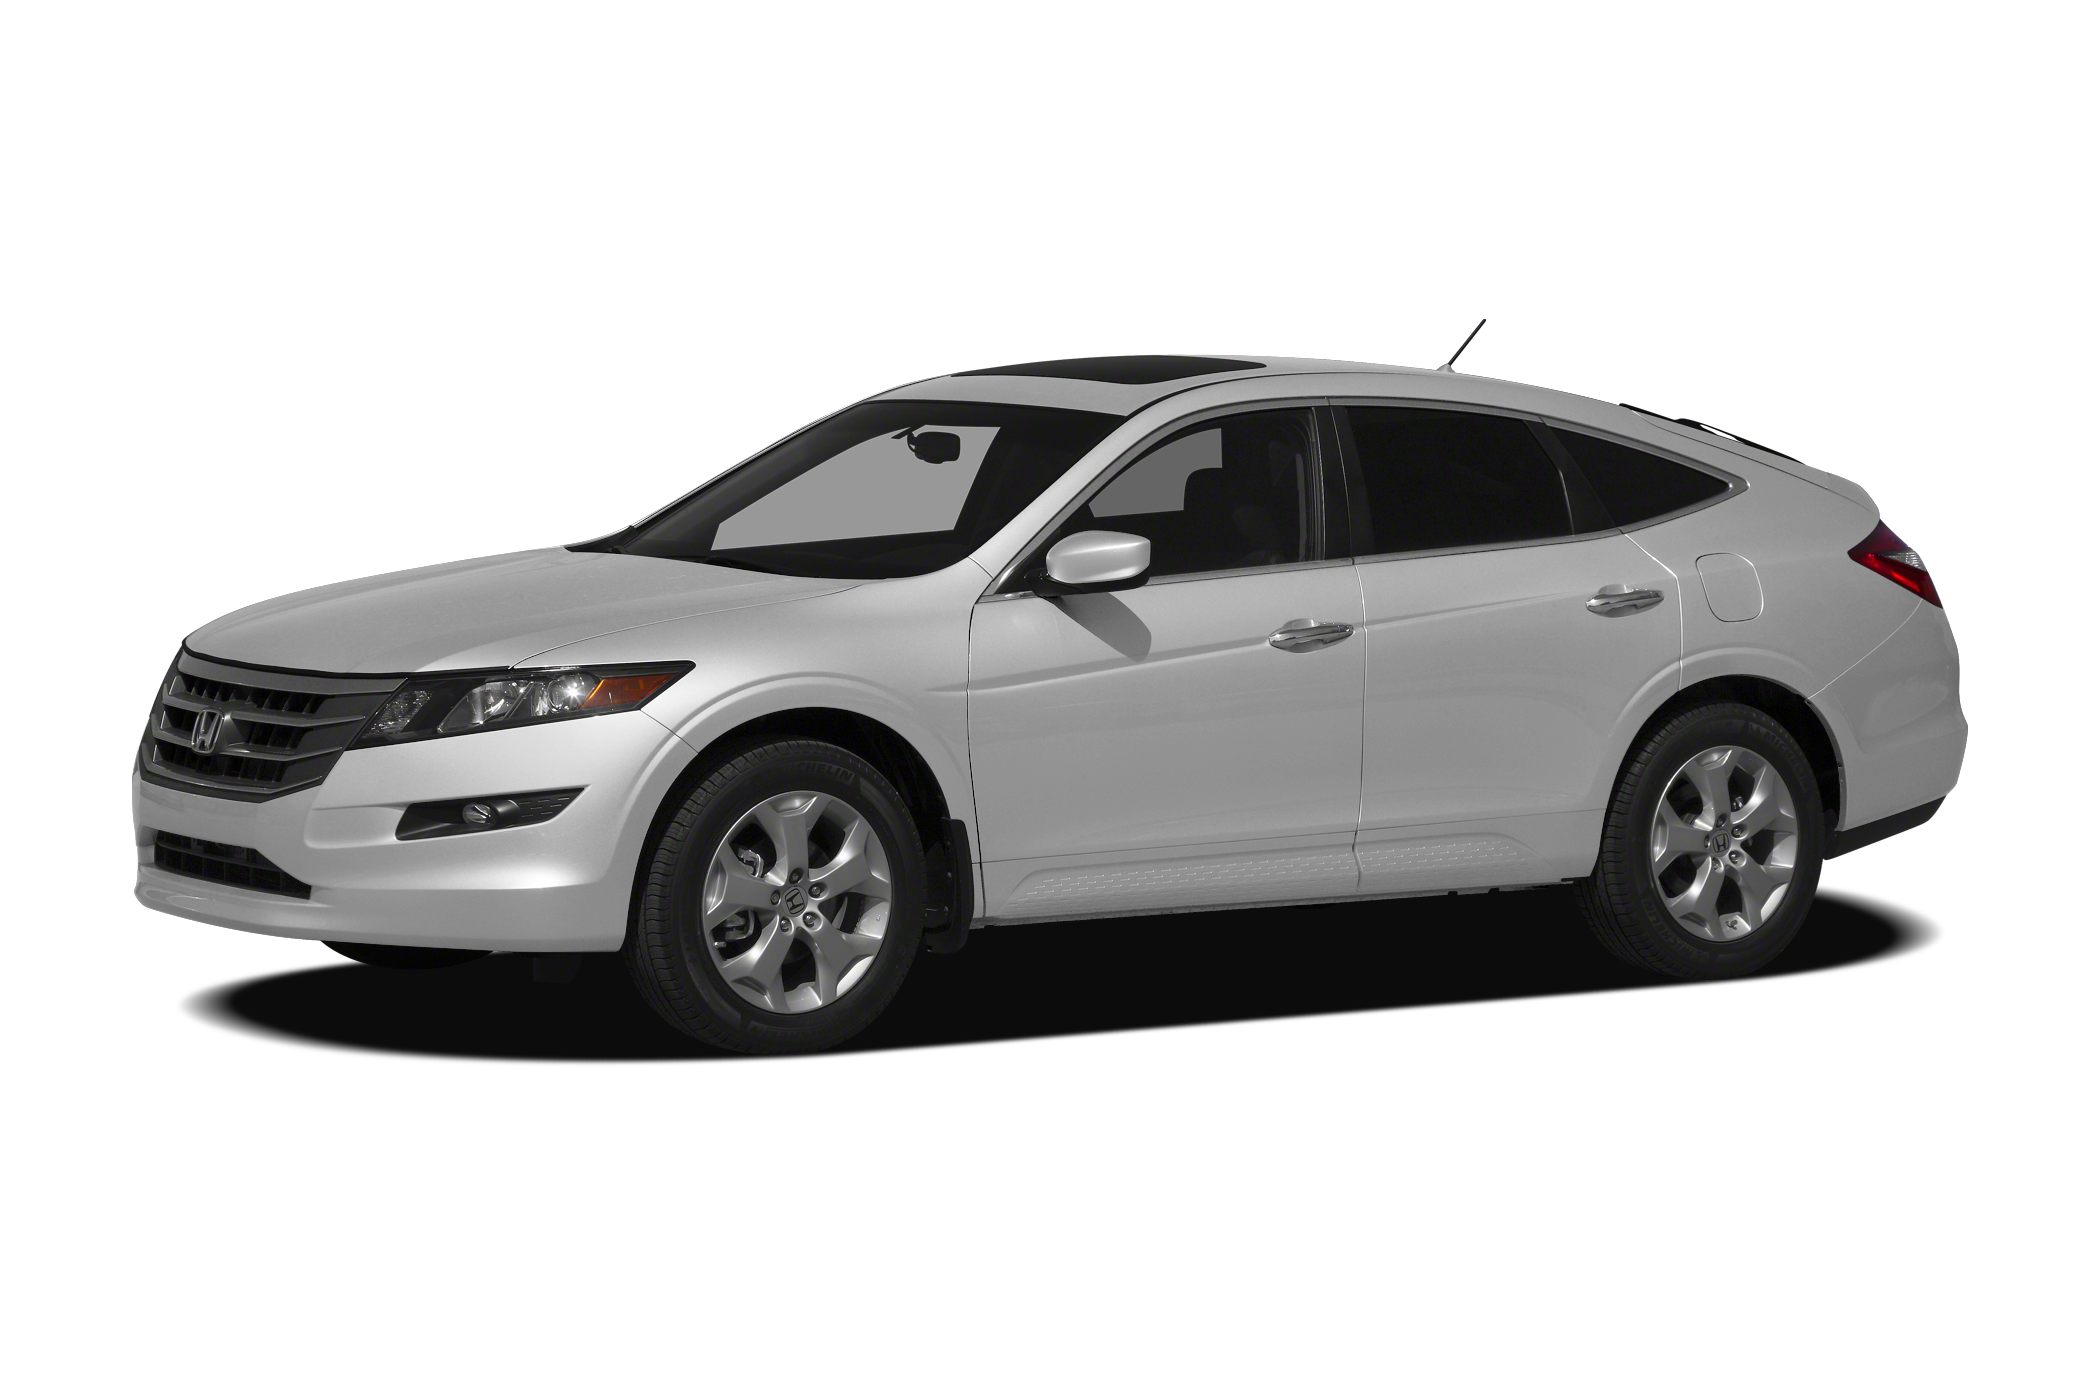 2011 Honda Accord Crosstour EX-L Wagon for sale in Florida City for $0 with 10 miles